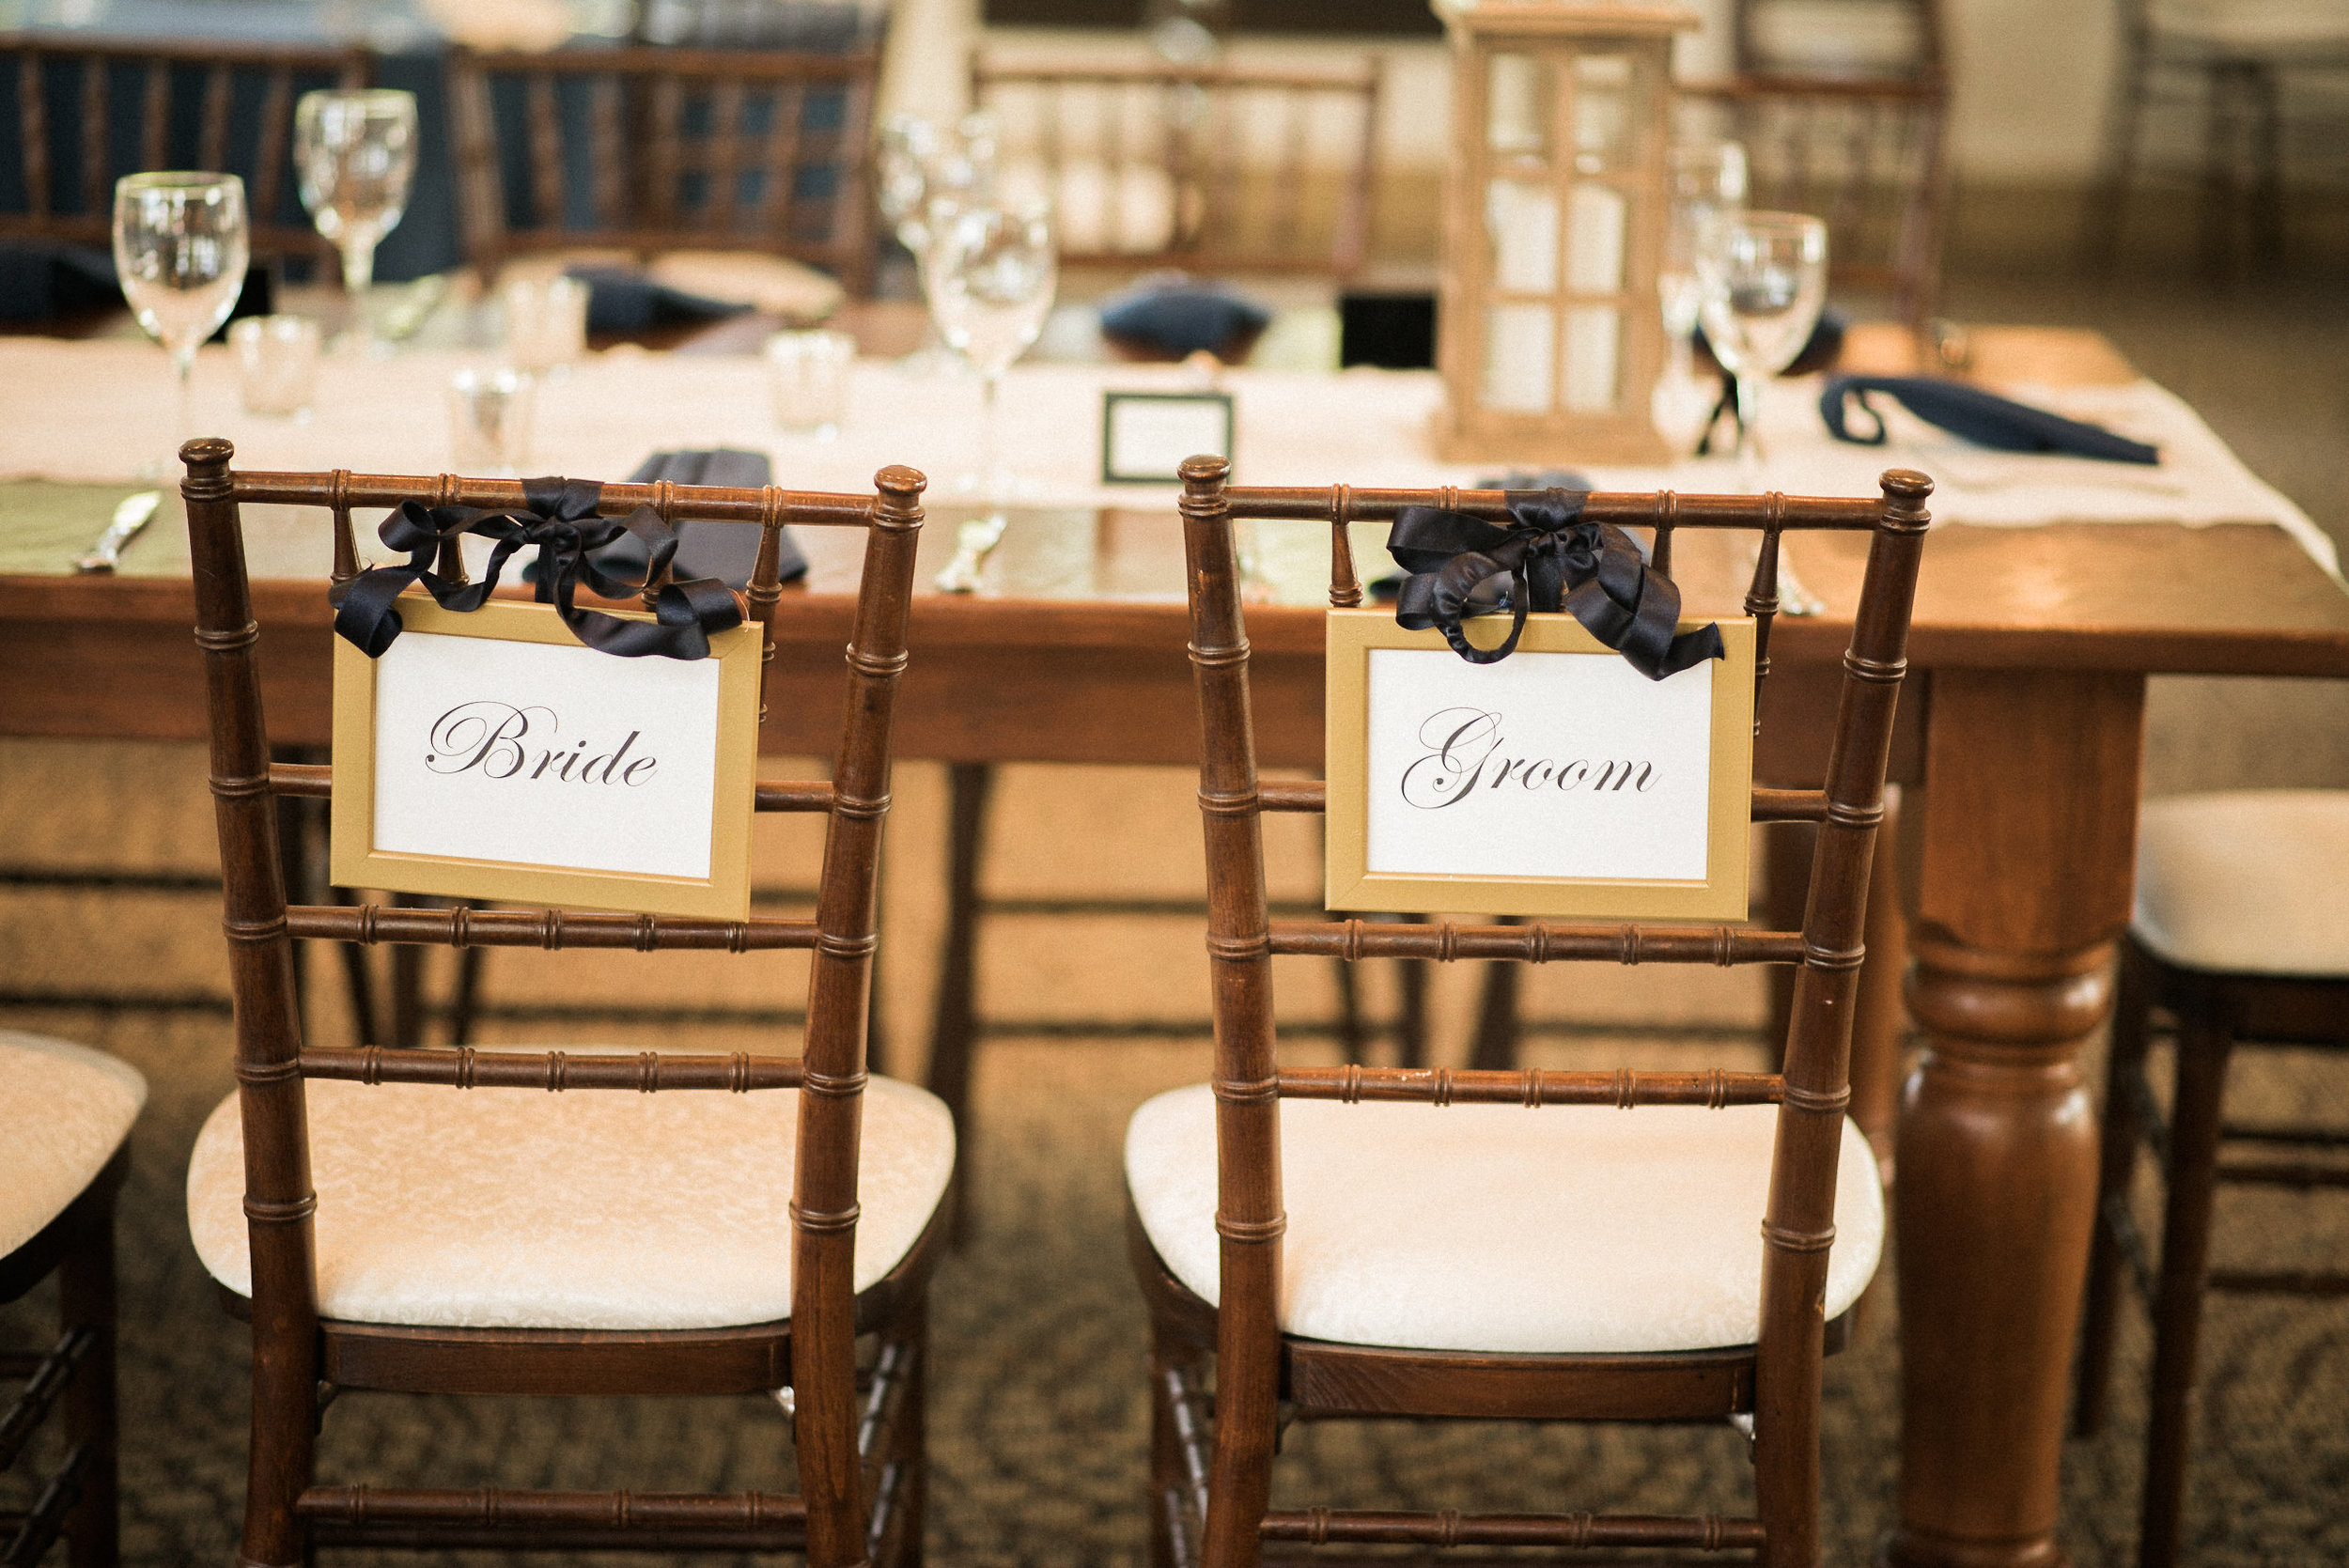 Bride and groom chairs for reception